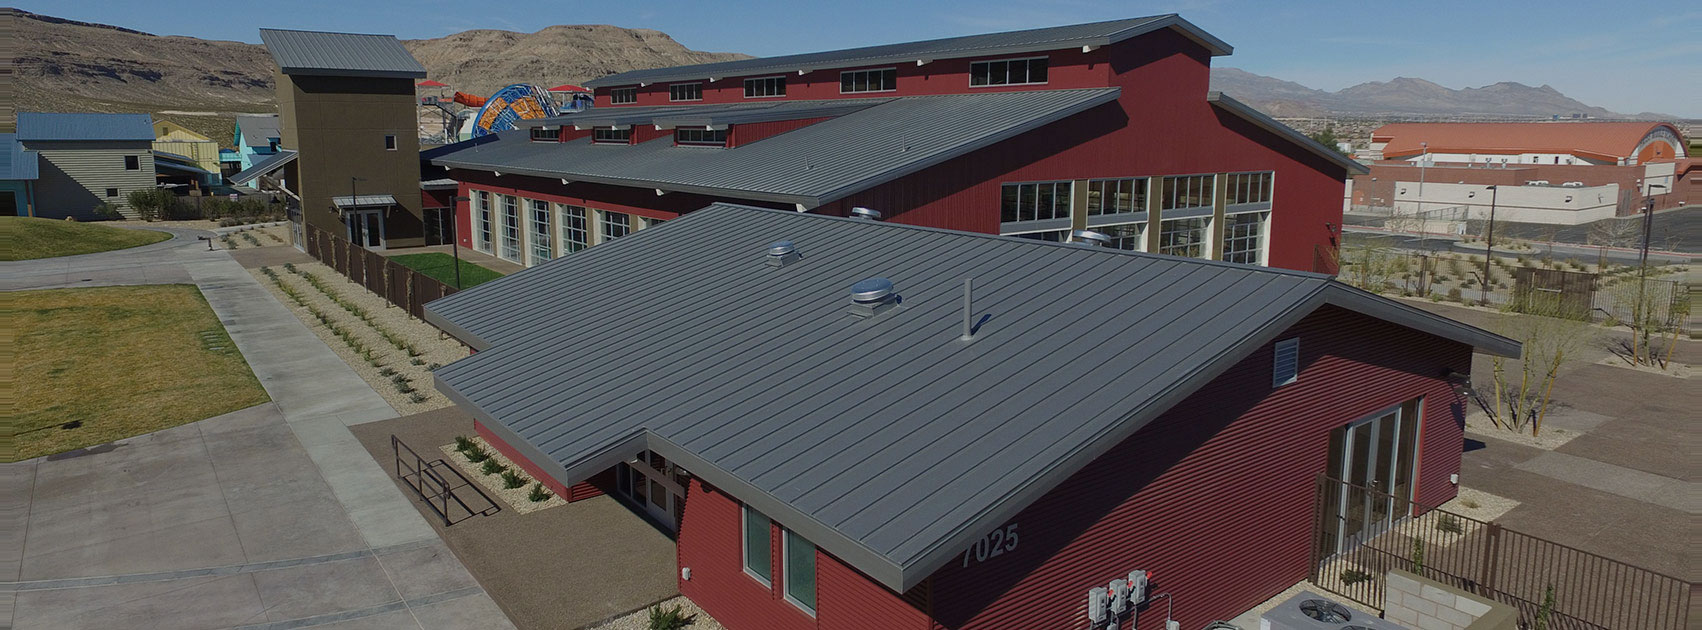 summerlin acquatic center roof metal work